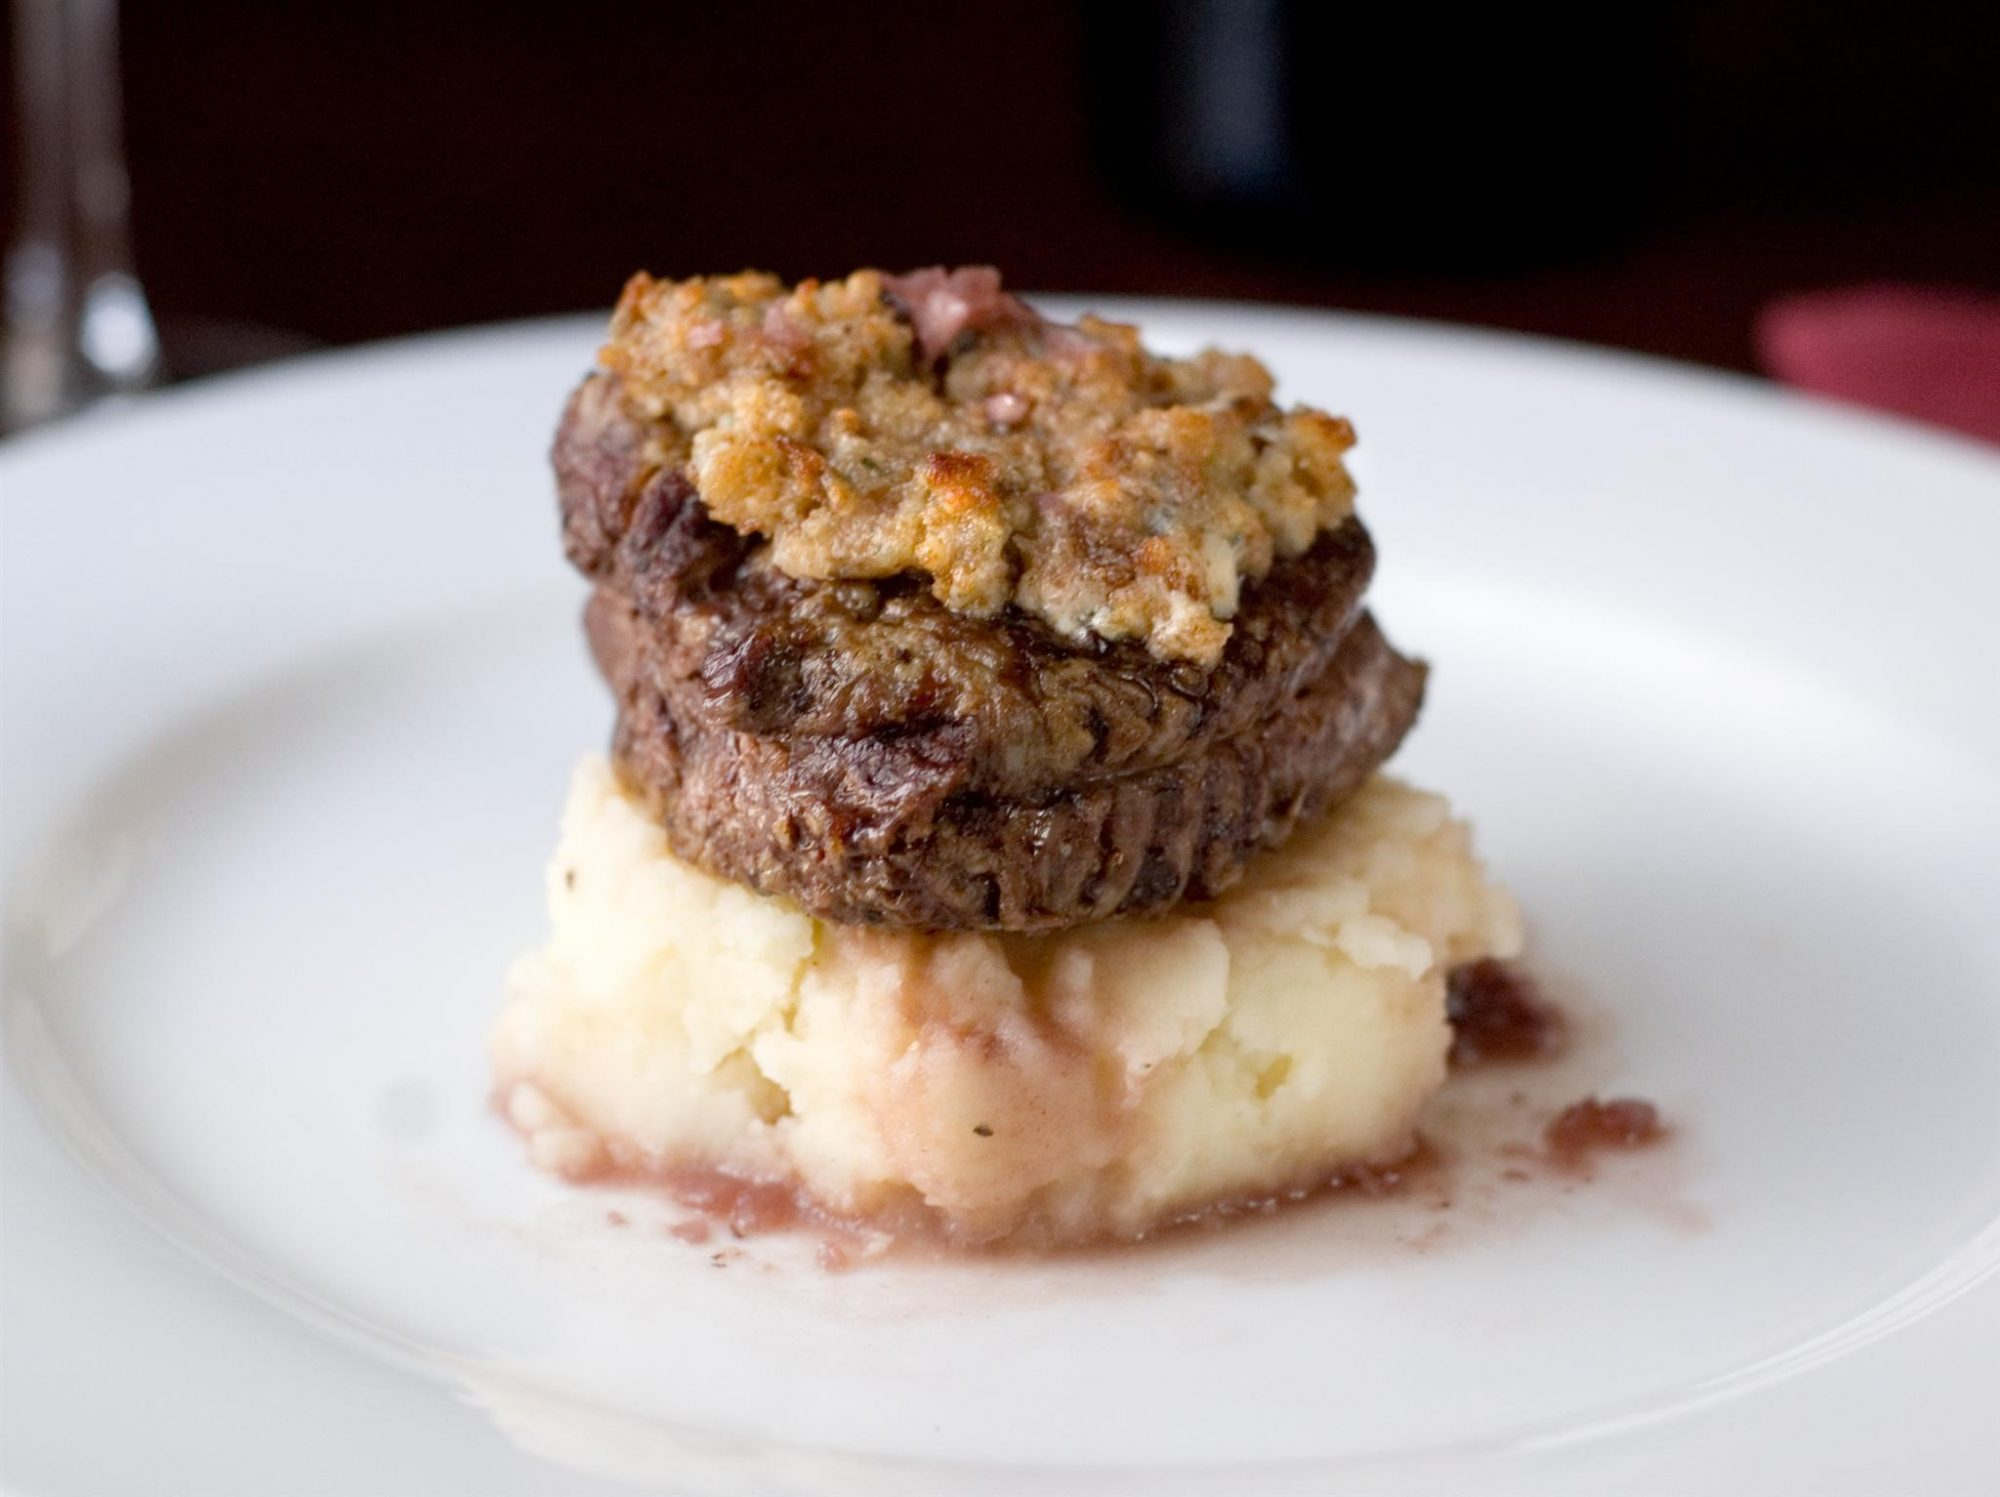 a filet topped with blue cheese served on a bed of mashed potatoes and sauce served centered on a white plate. Looks fancy!